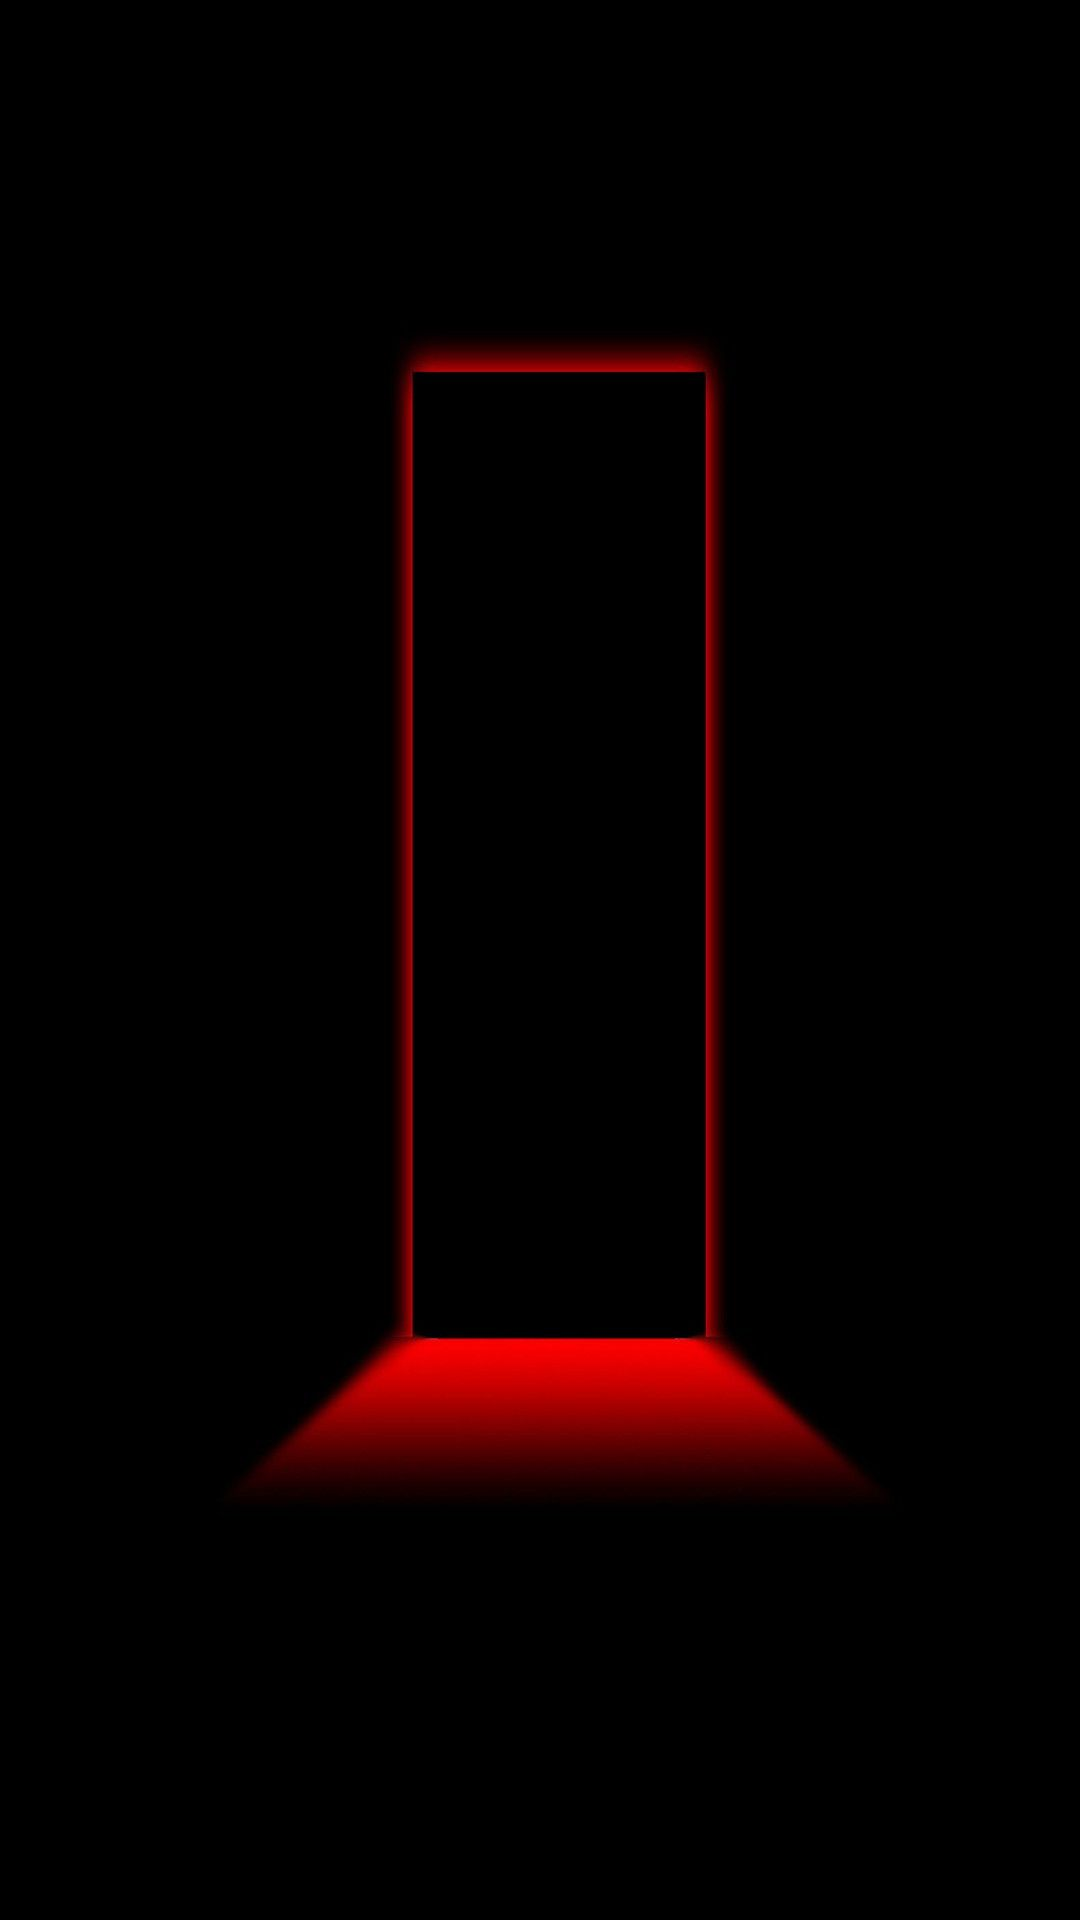 Red Light Iphone Wallpapers In 2020 Black Hd Wallpaper Abstract Iphone Wallpaper Hd Cool Wallpapers